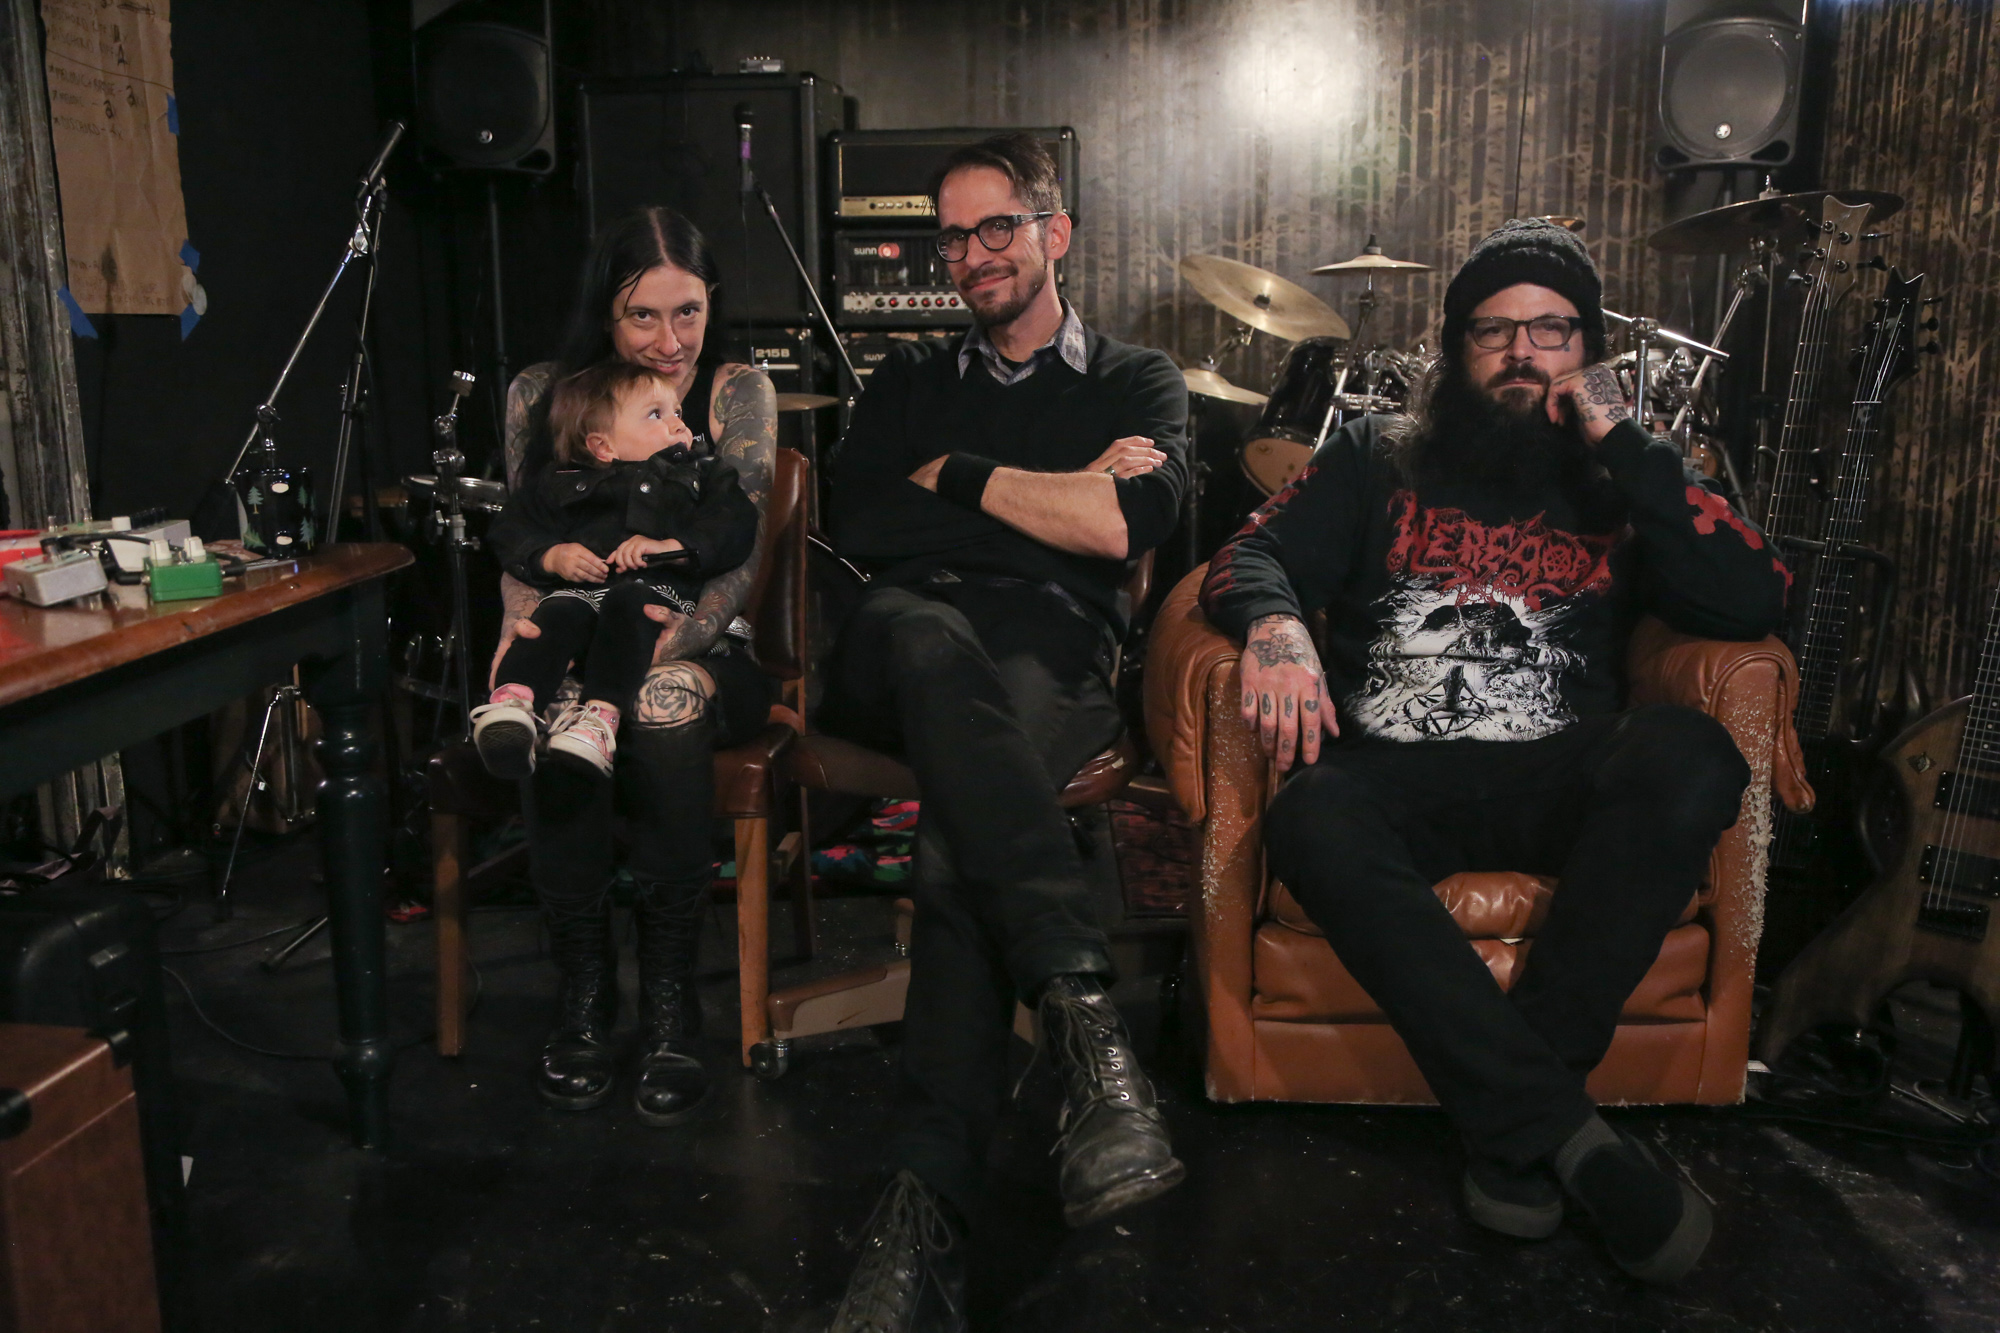 Post-interview with Stevie Floyd (Taurus), Jef Whitehead (Leviathan), and Grail (the little one). Oregon.